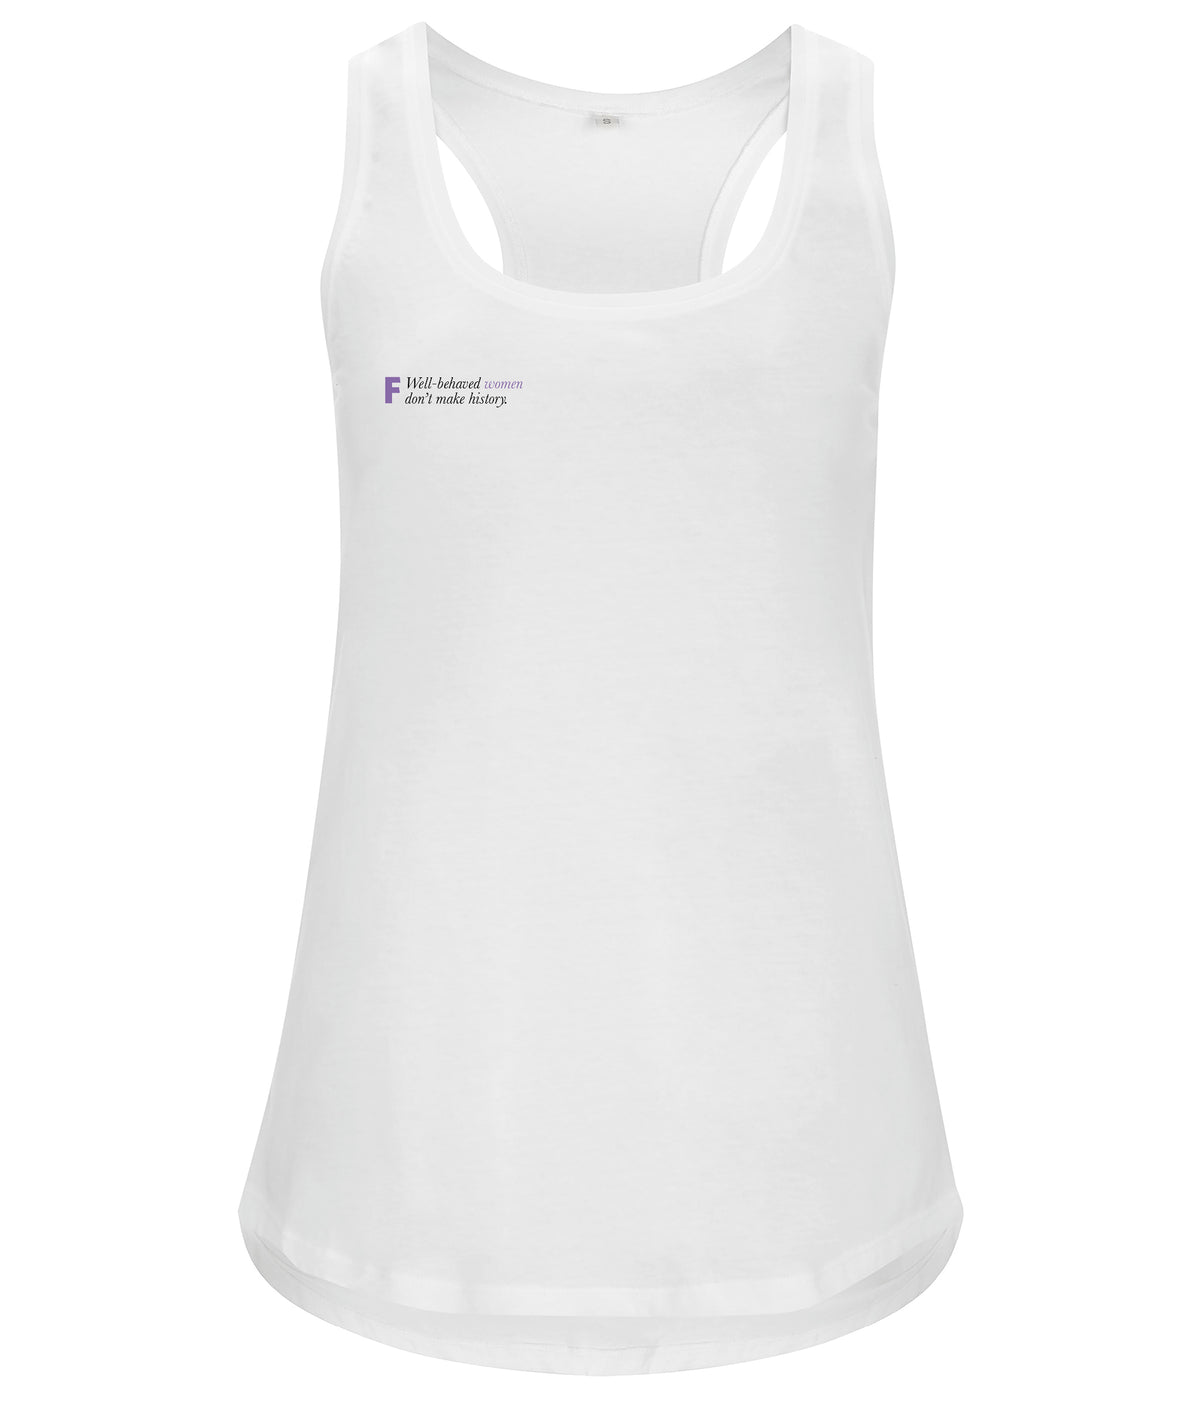 Well Behaved Women Don't Make History Organic Feminist Racerback Vest White